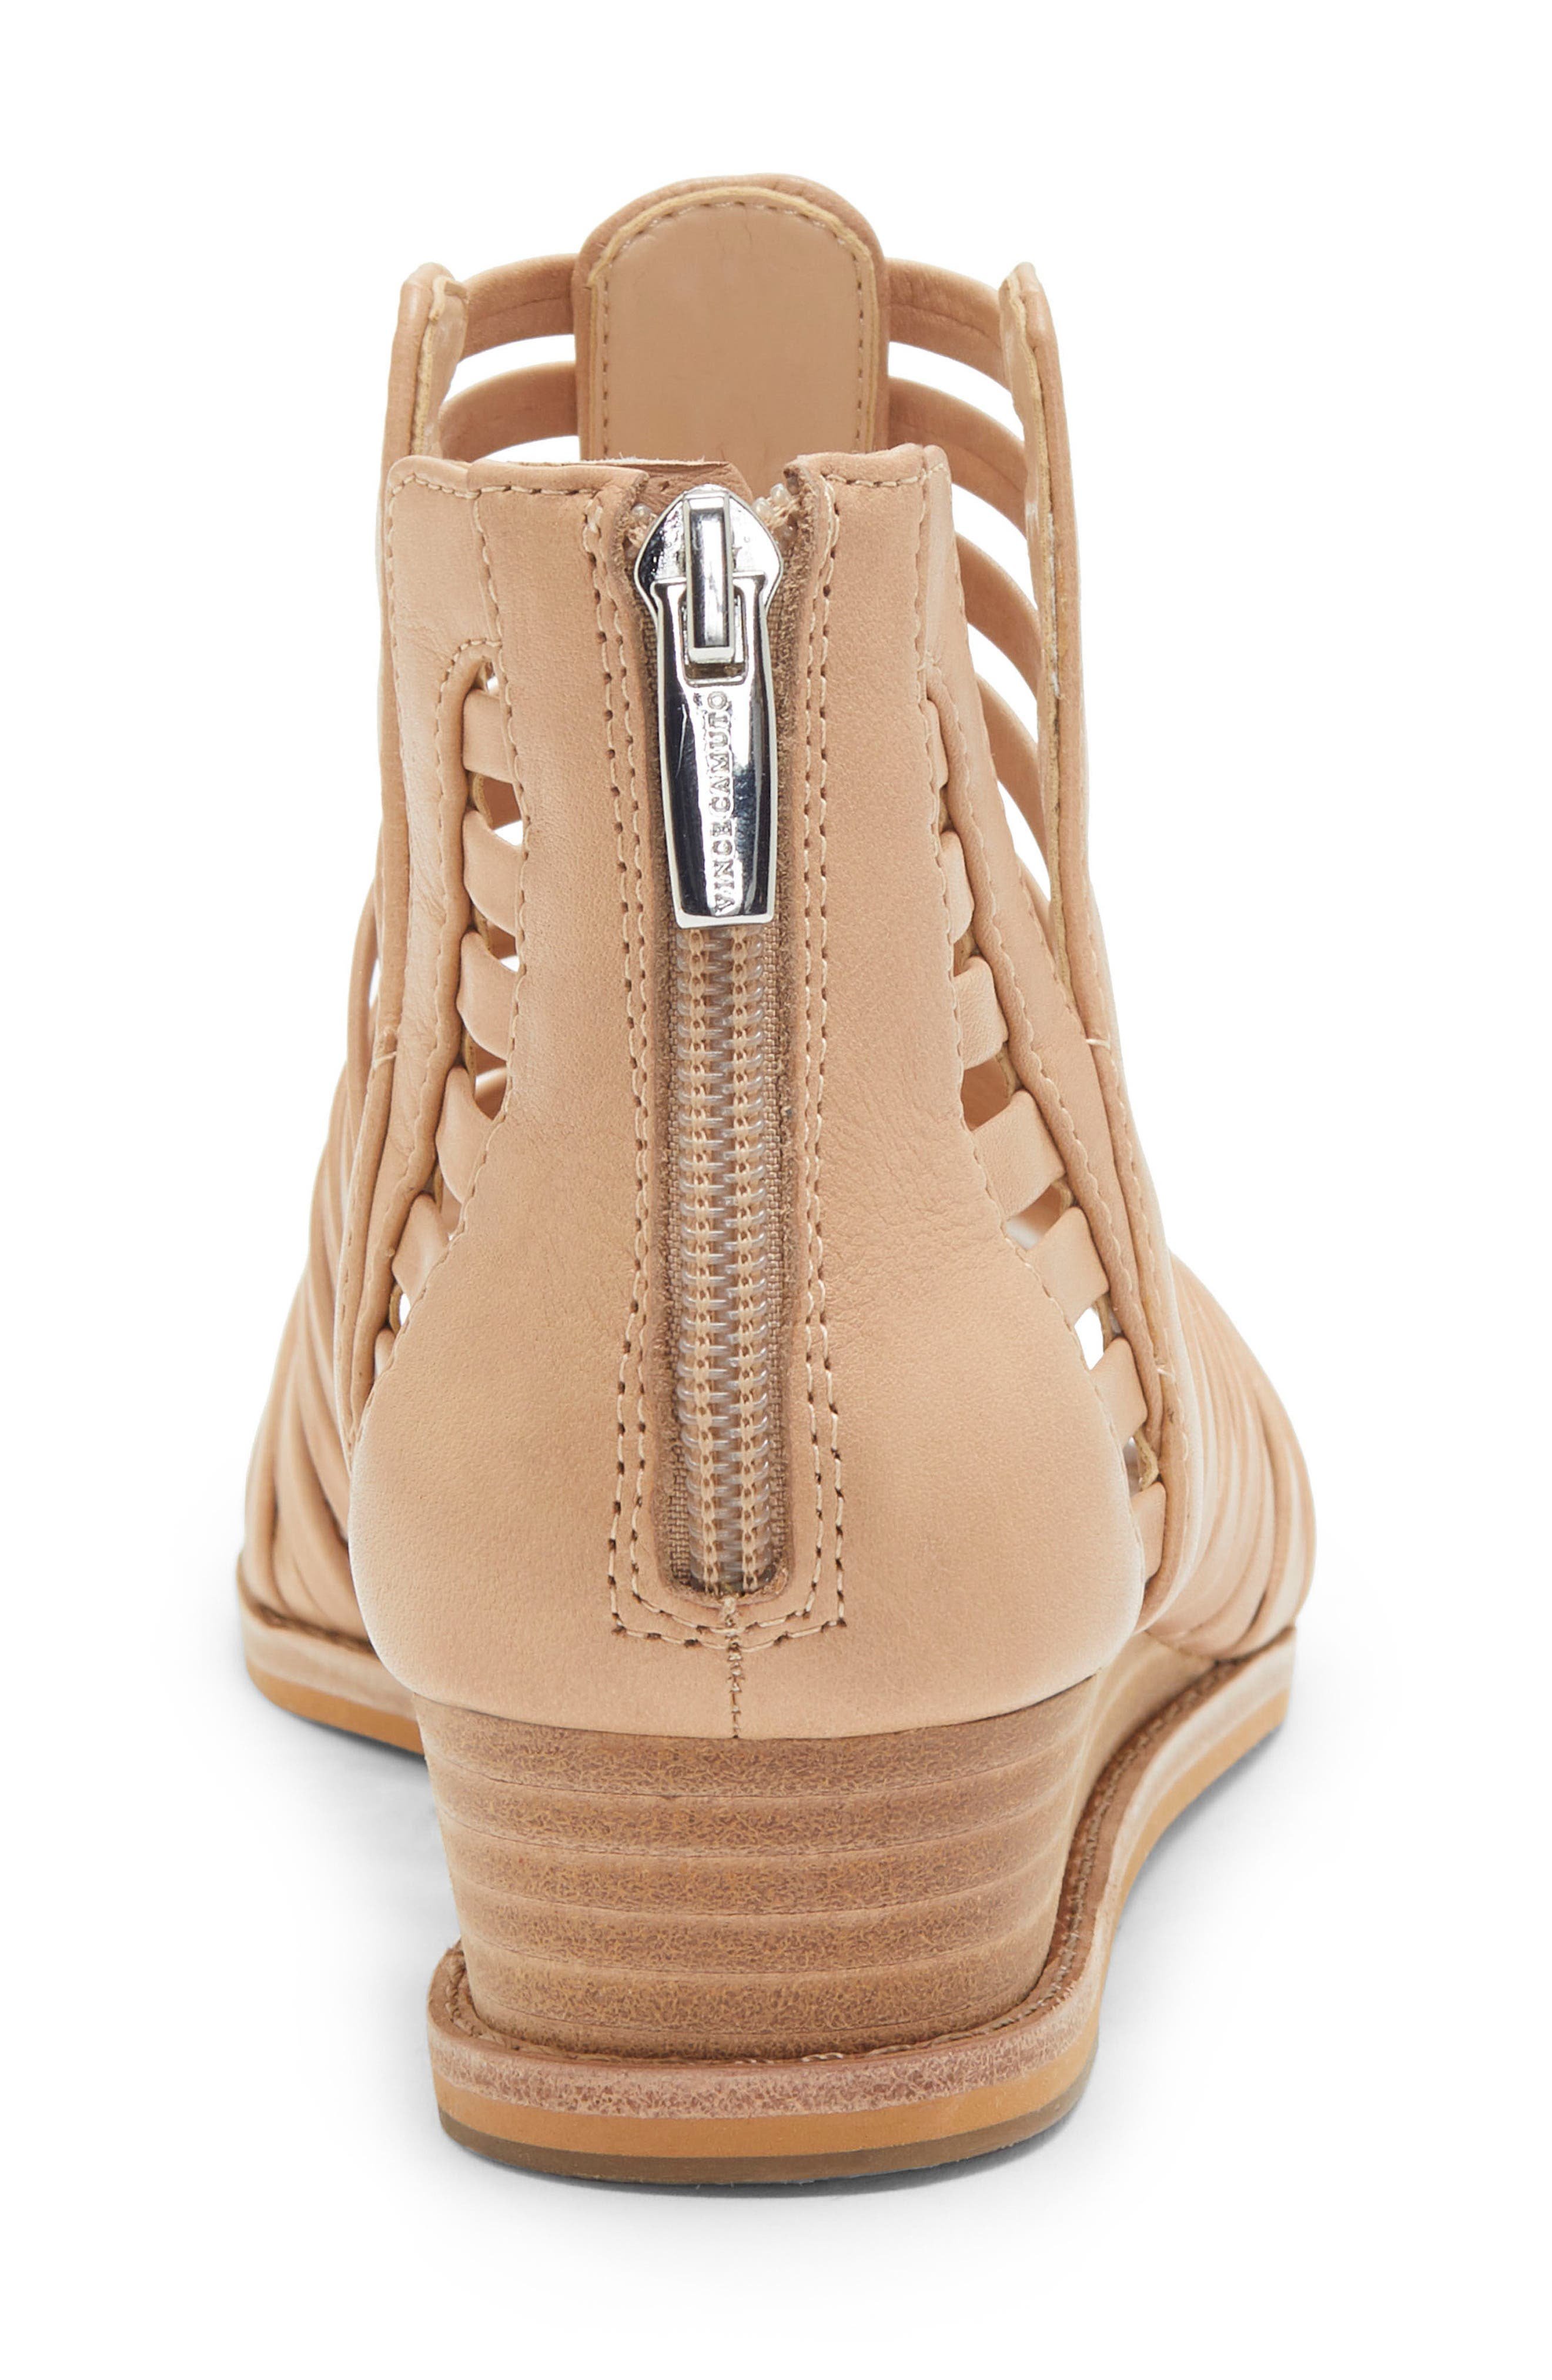 VINCE CAMUTO, Revey Wedge Sandal, Alternate thumbnail 7, color, NATURAL LEATHER